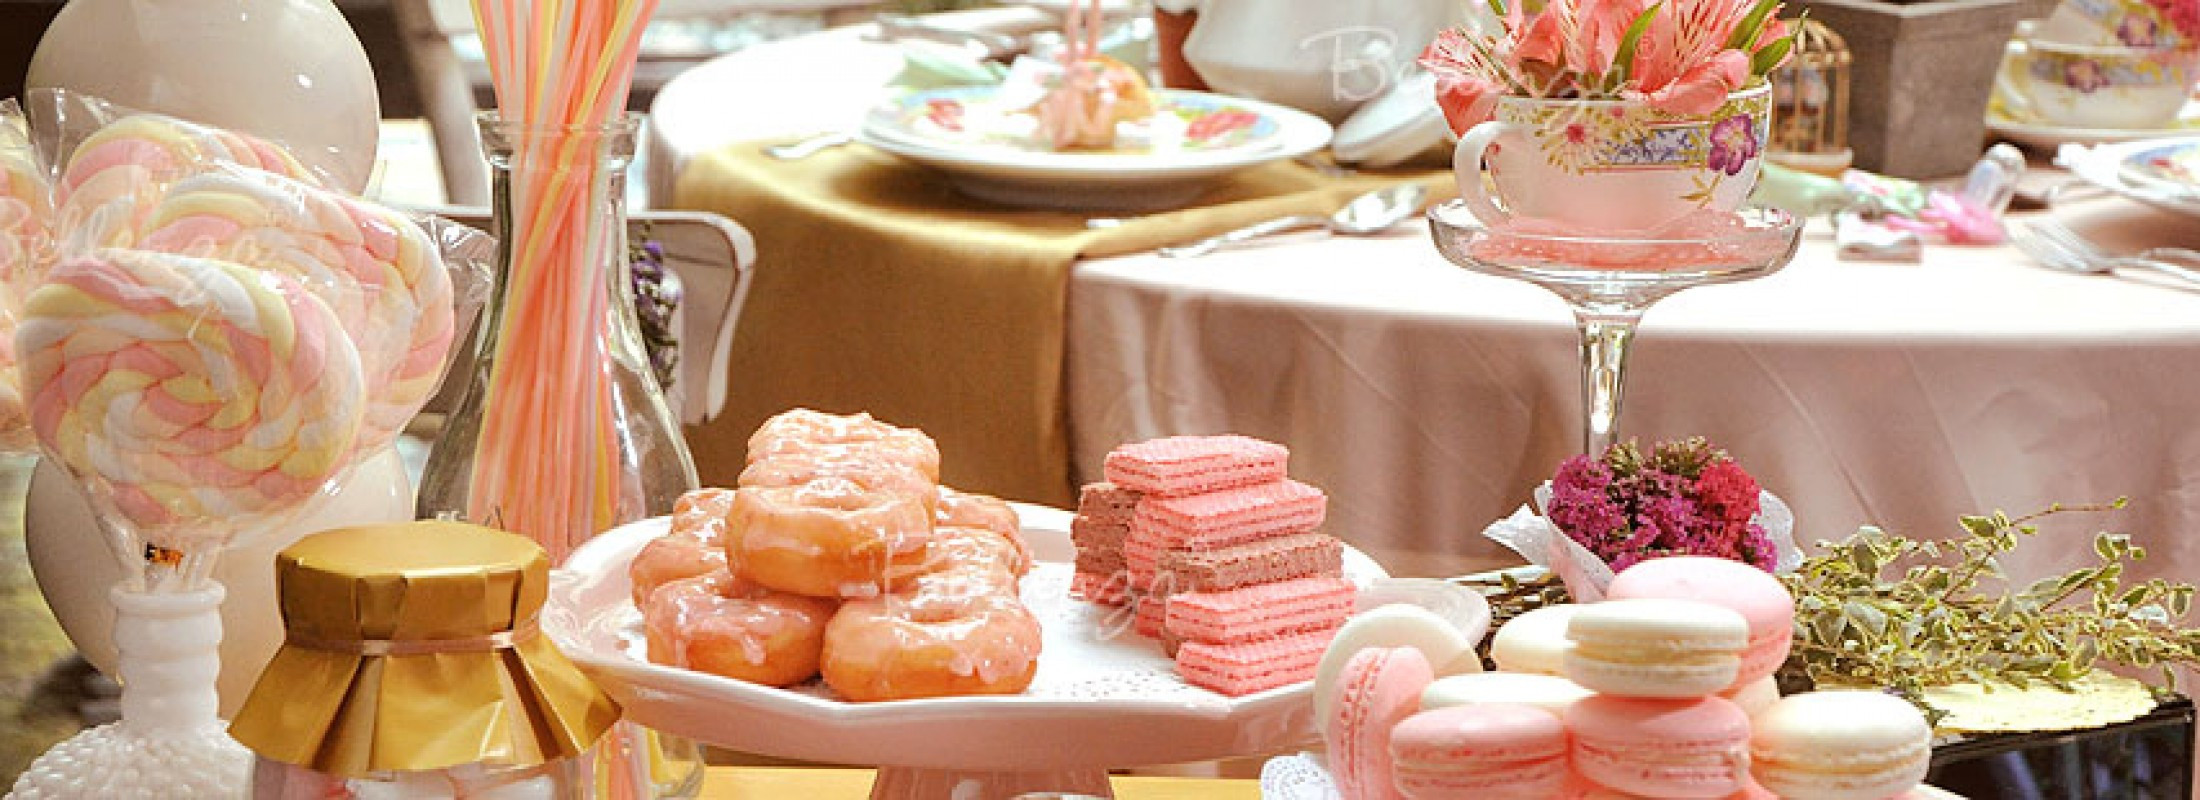 Baby Shower Dessert Table Ideas  Oh Sweet Baby A Dessert Table for a Summer Baby Shower